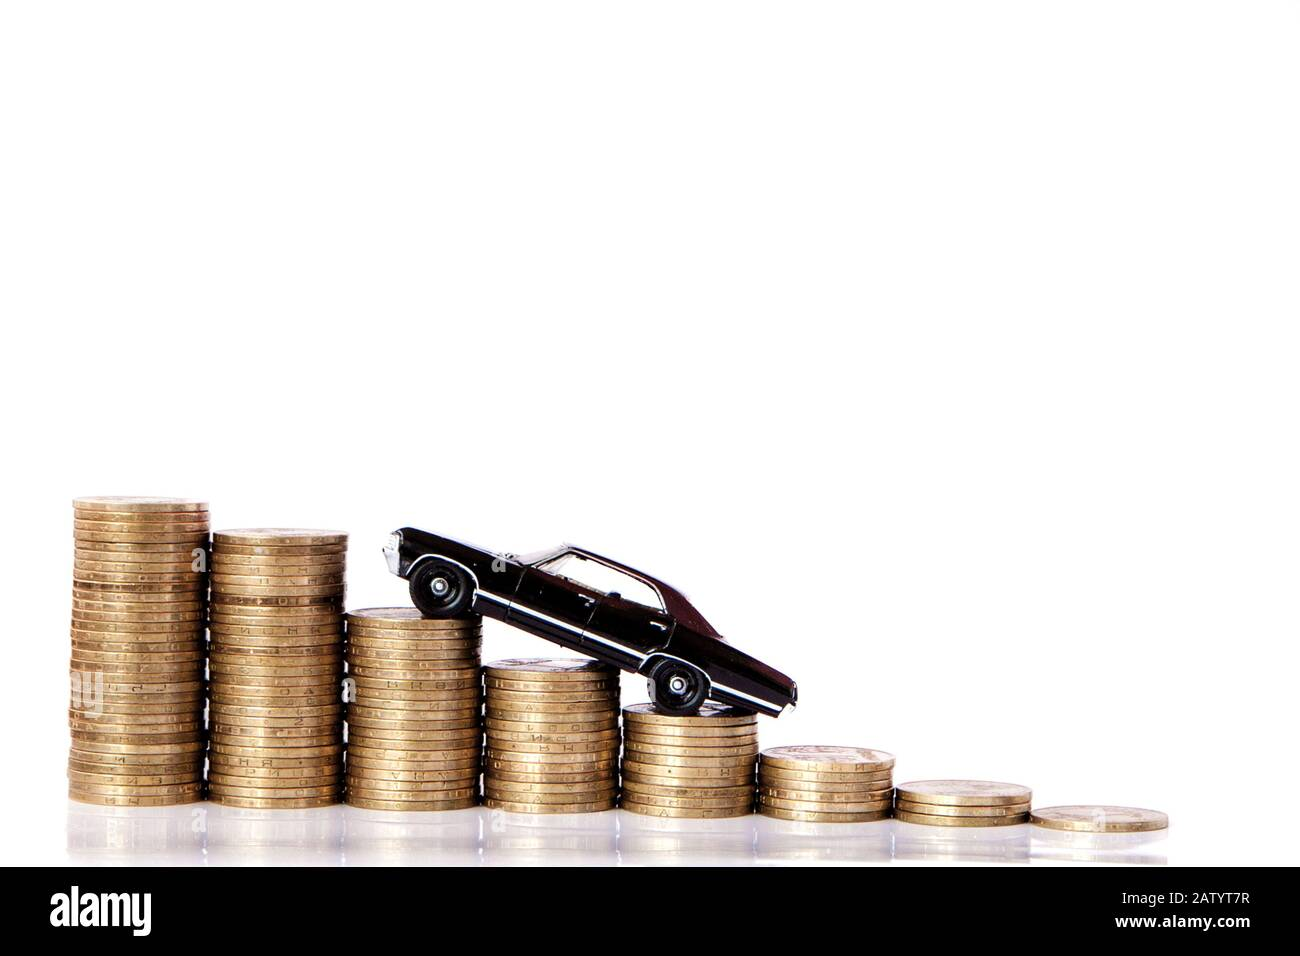 A black model of a car with coins in the form of a histogram on a white background. Concept of lending, savings, insurance. Stock Photo